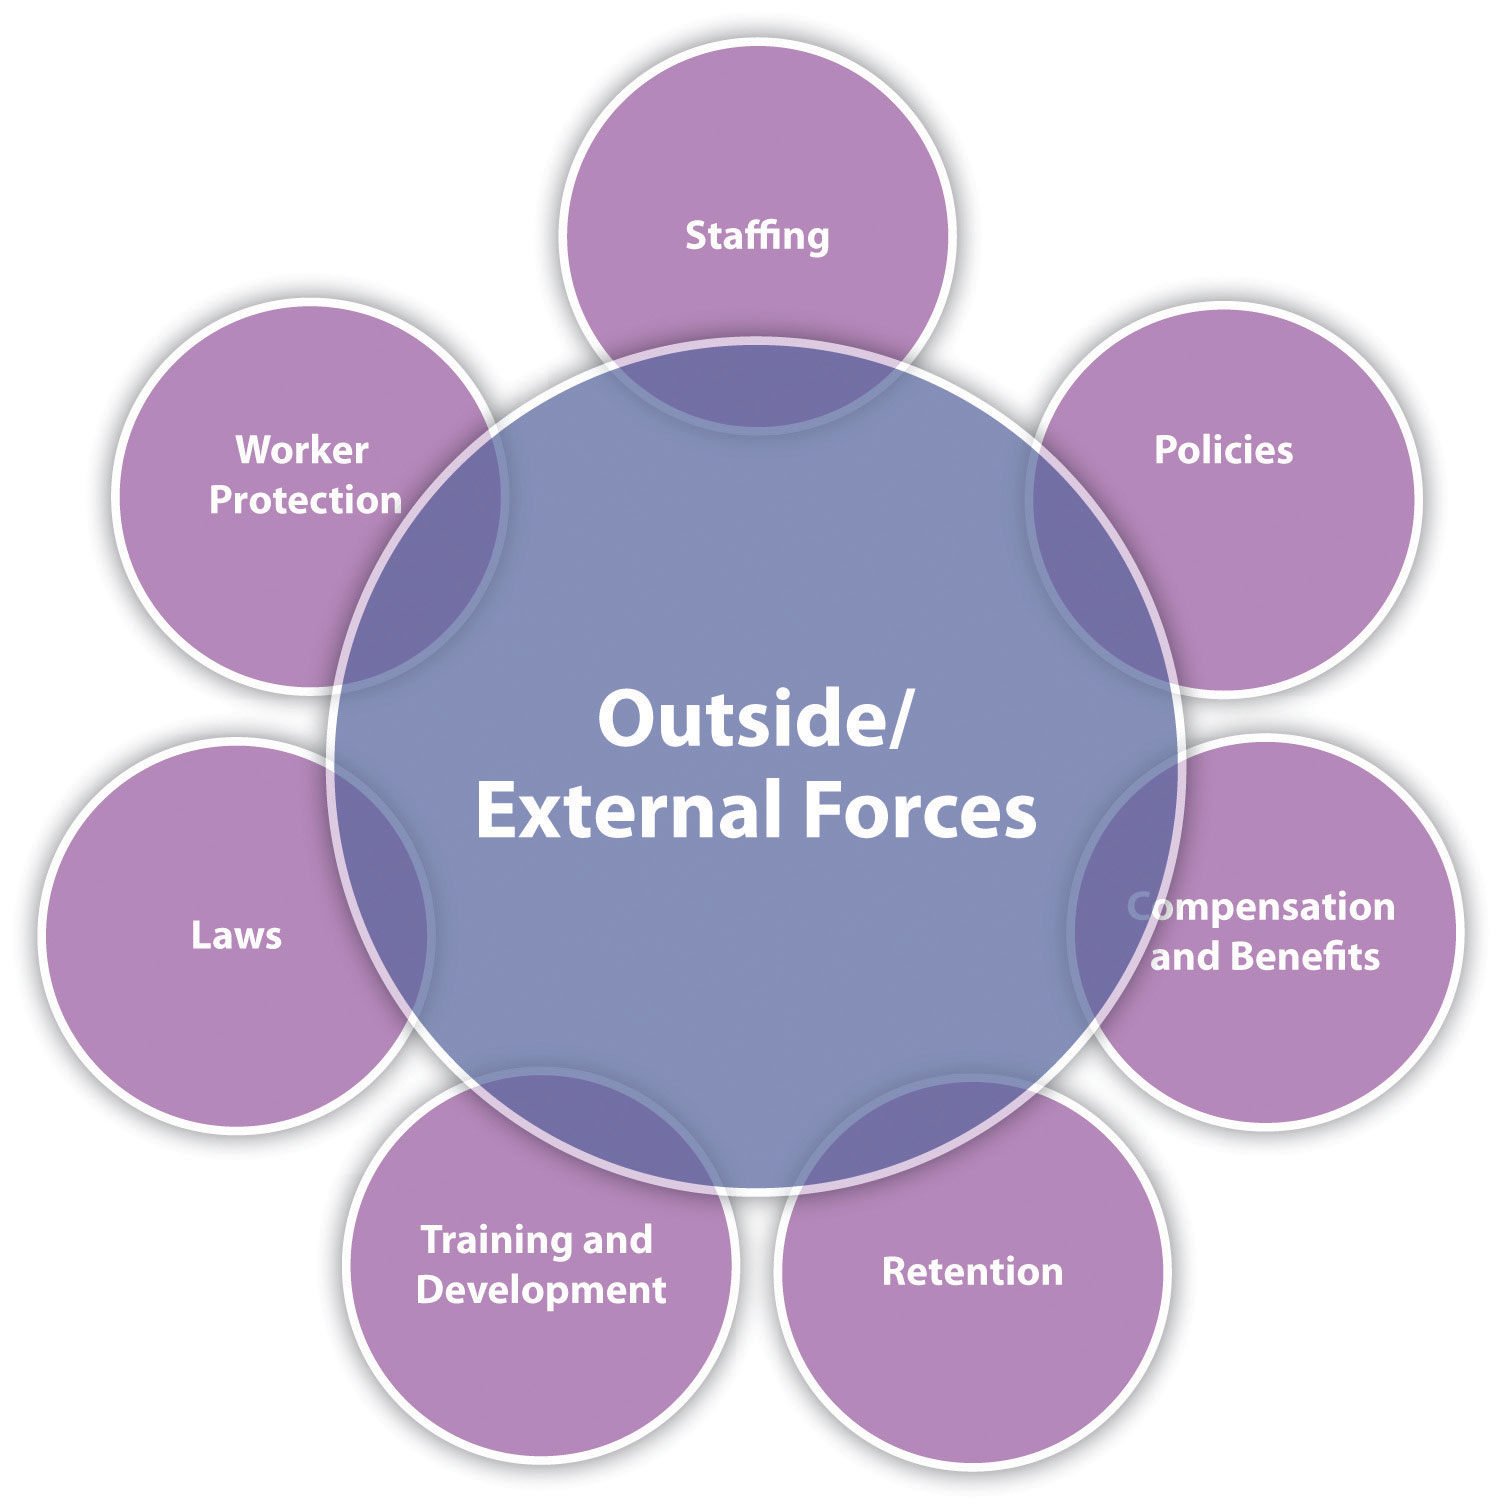 internal and external factors that impact employment relationship cipd View essay - 3mer cipd from hr 0505050 at north texas 3mer lauren robinson 11 there are a number of factors that impact on the relationship between employees and employers whether that is.